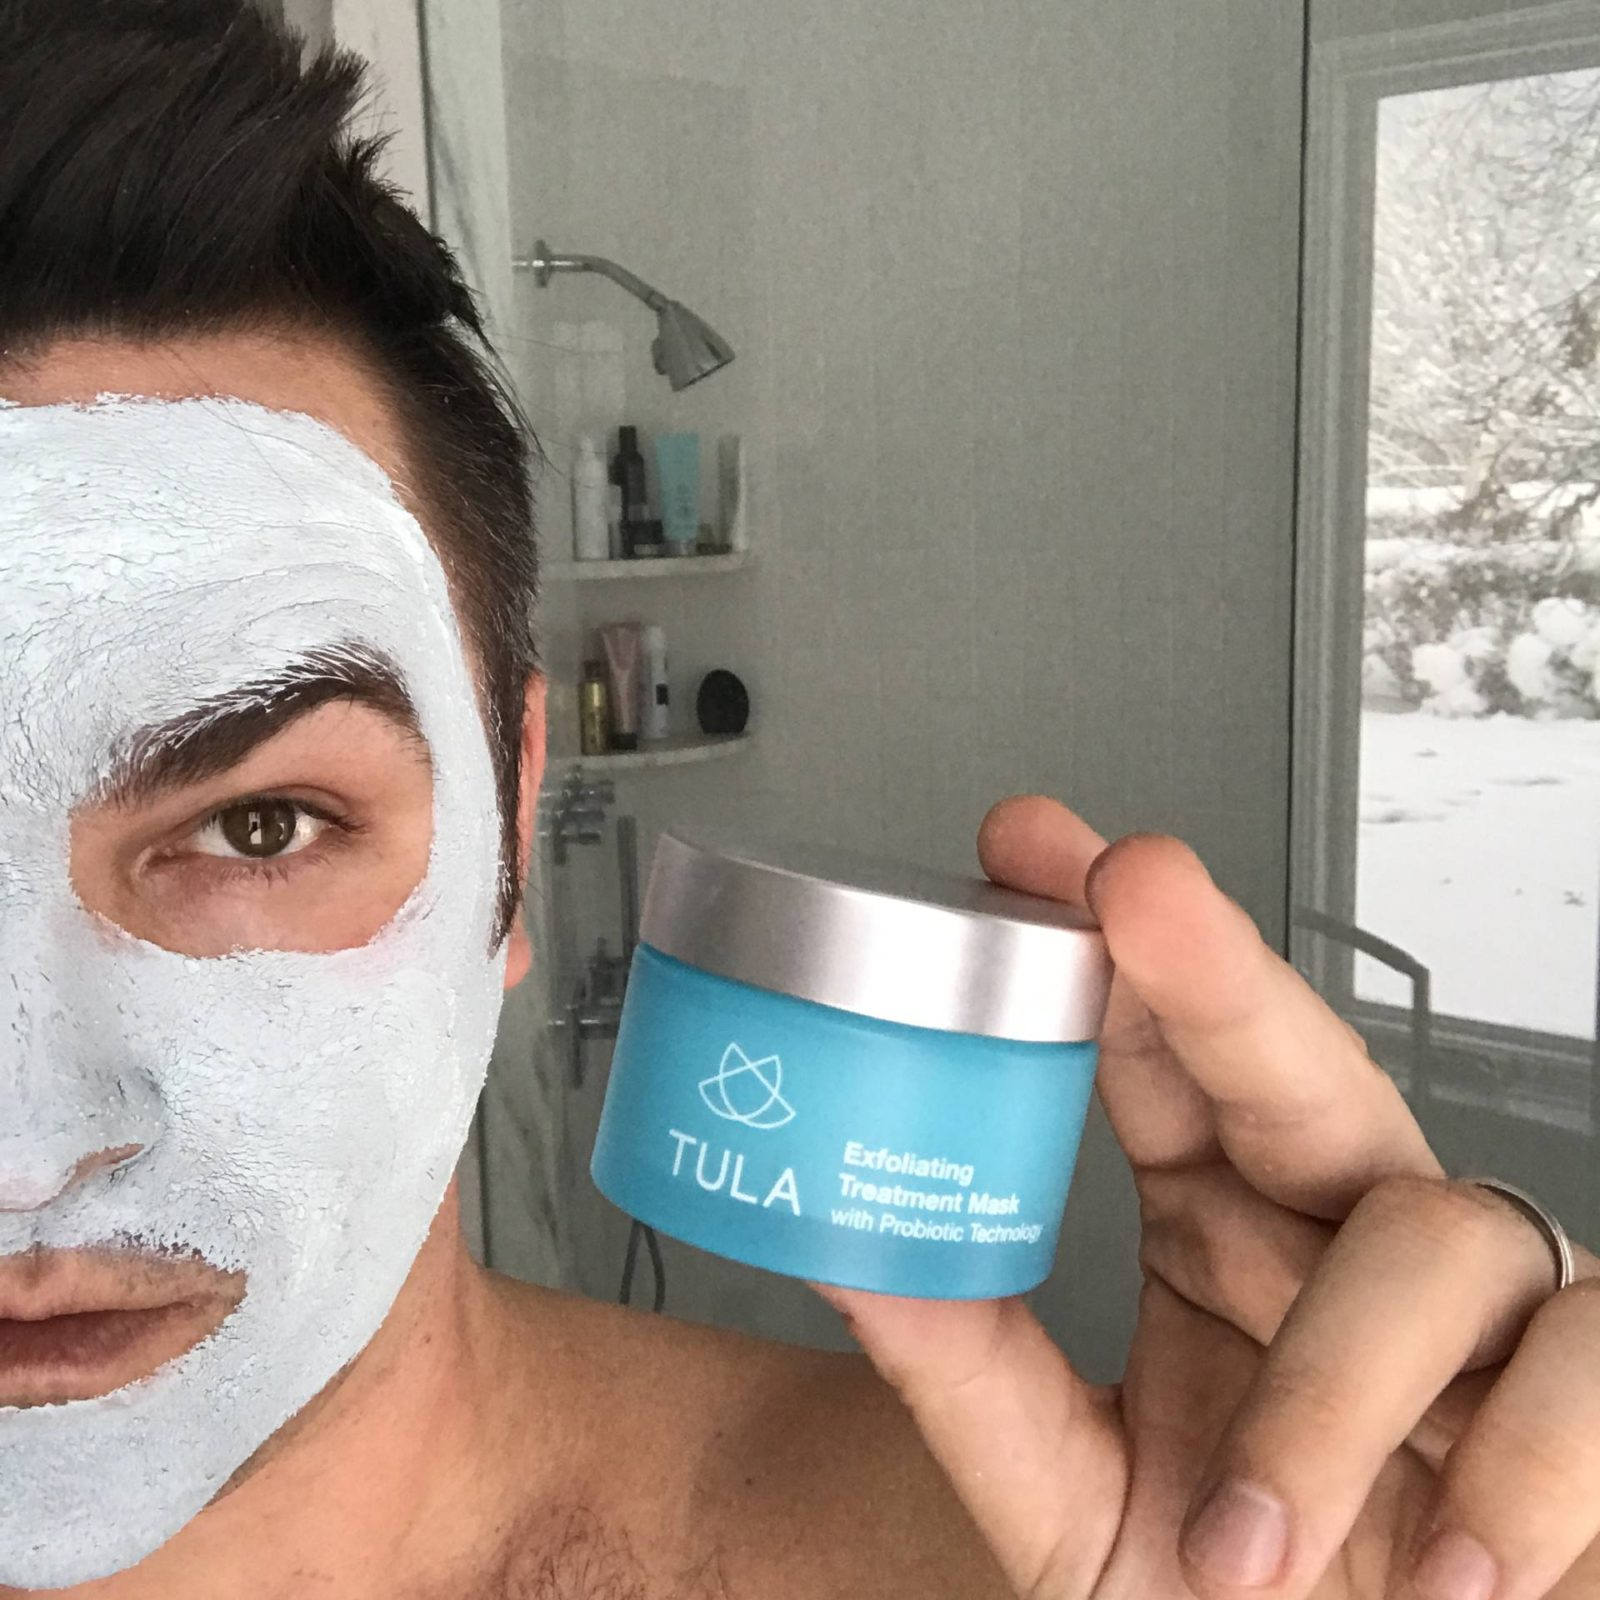 Ready in 5 ft. TULA Exfoliating Treatment Mask & Exclusive Holiday Offer